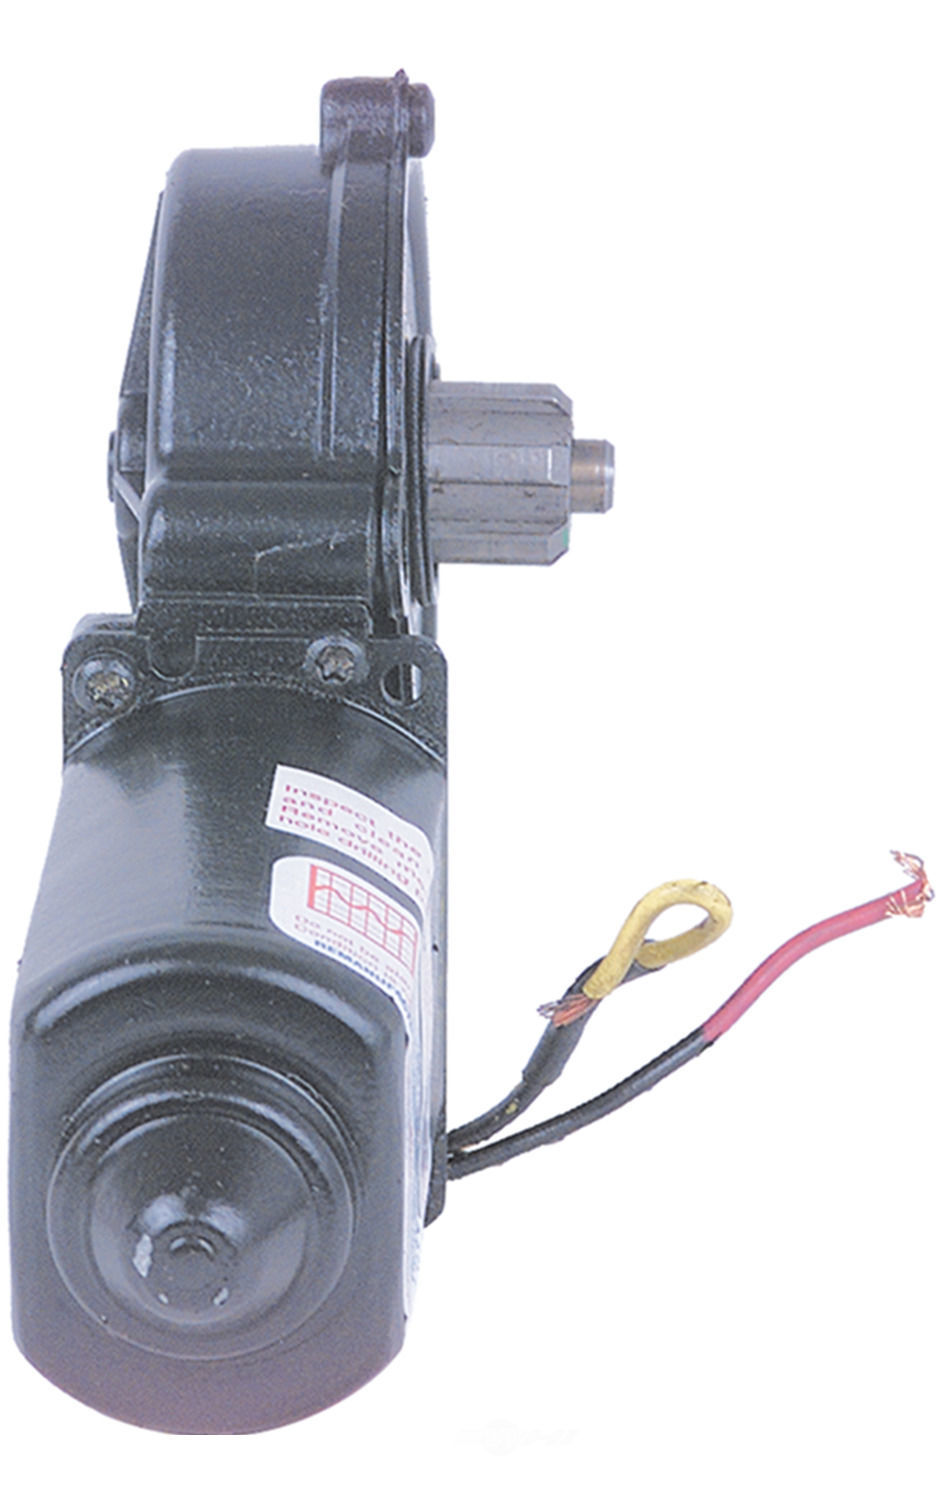 Power window motor window lift motor rear left reman fits for 2002 ford explorer window motor replacement